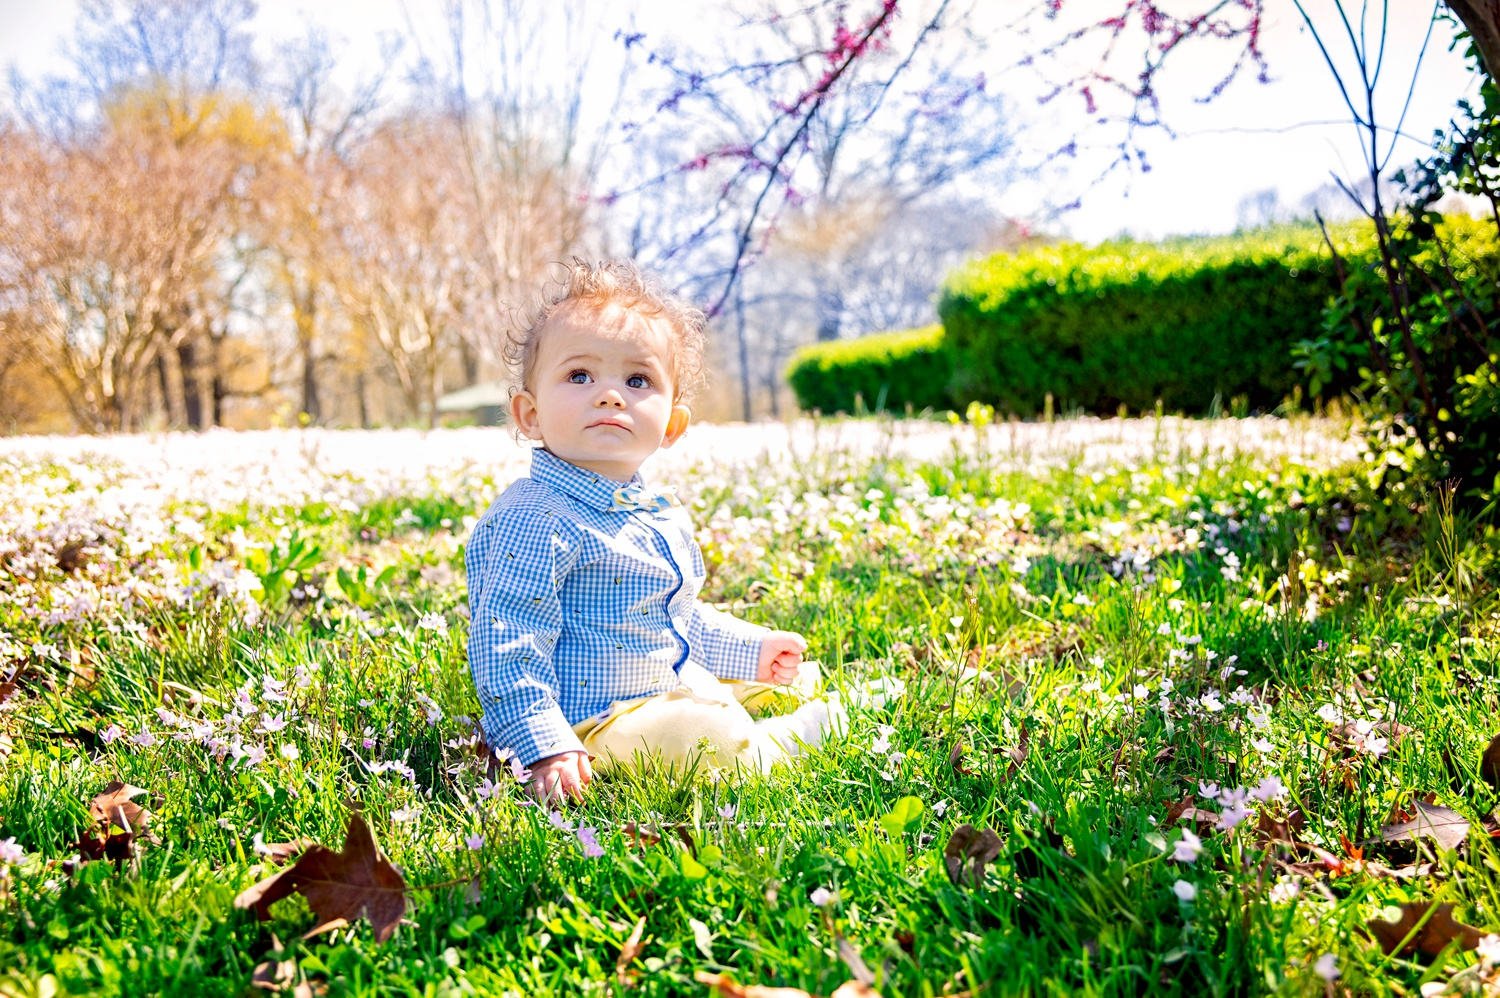 paducah family photographer baby photos amsw photography spring flowers